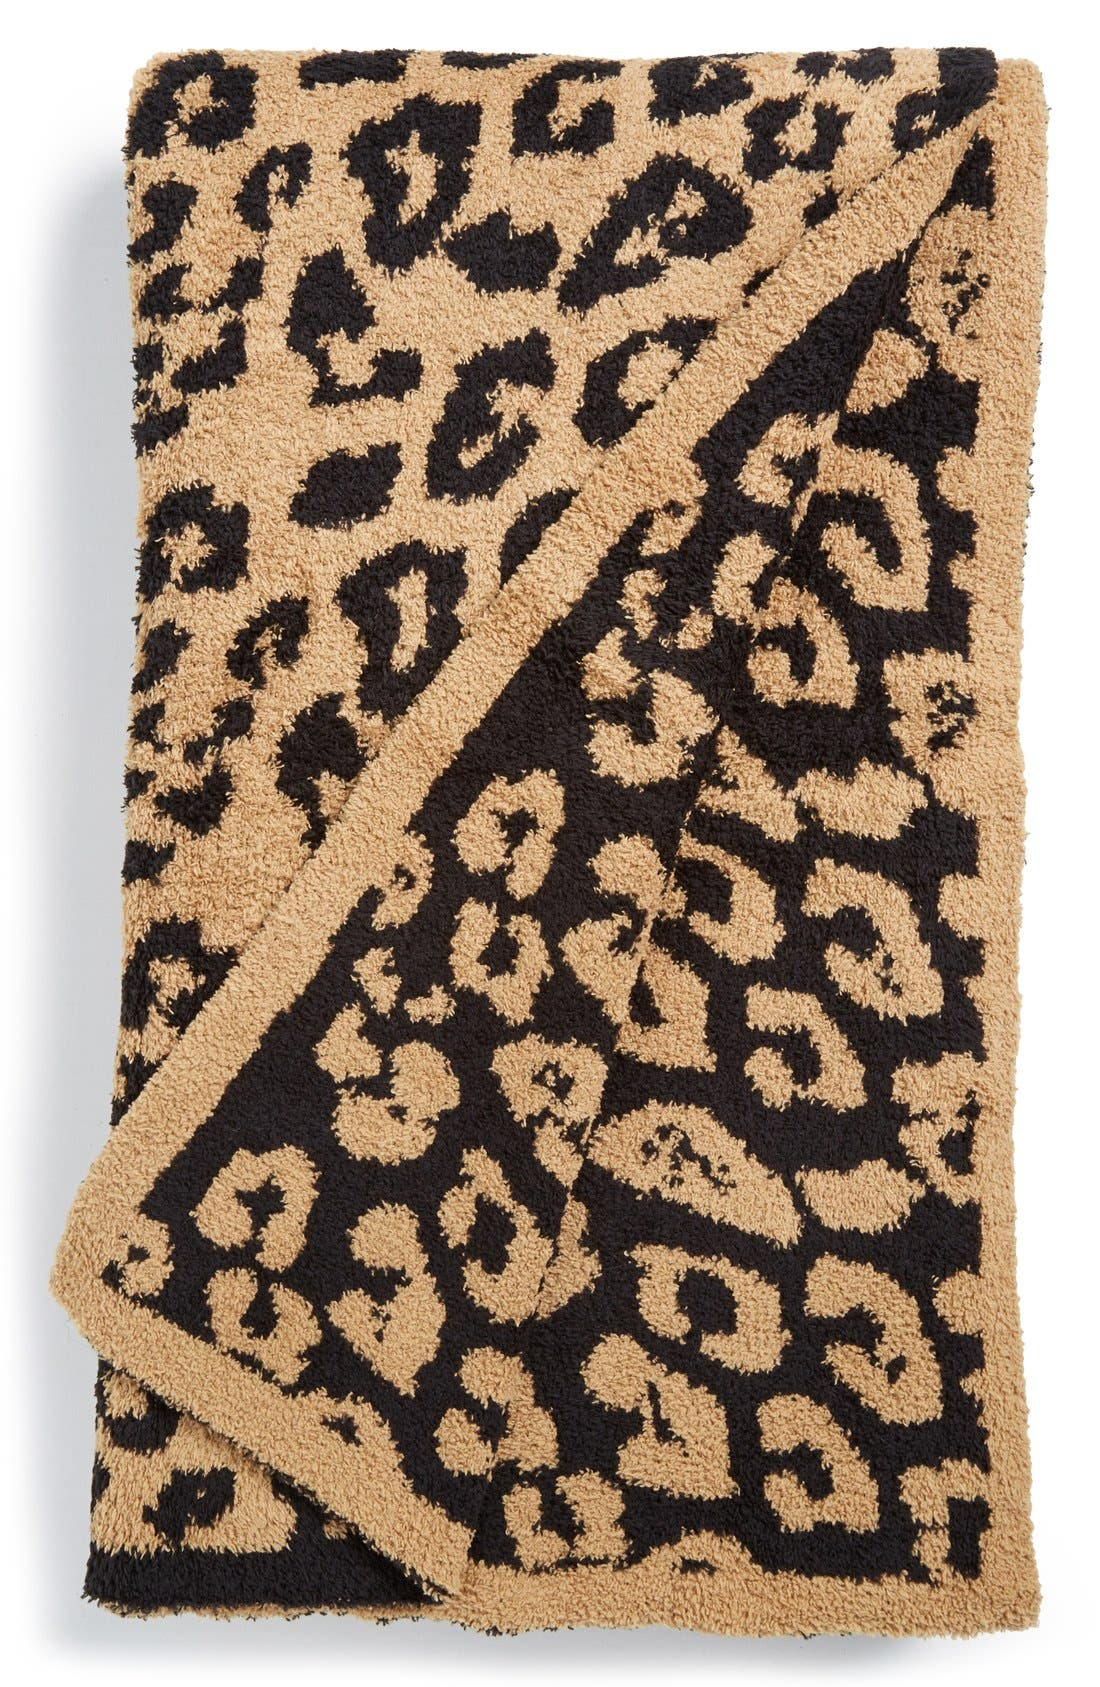 CozyChic 'In the Wild' Throw Blanket,                         Main,                         color, MIDNIGHT/ CAMEL